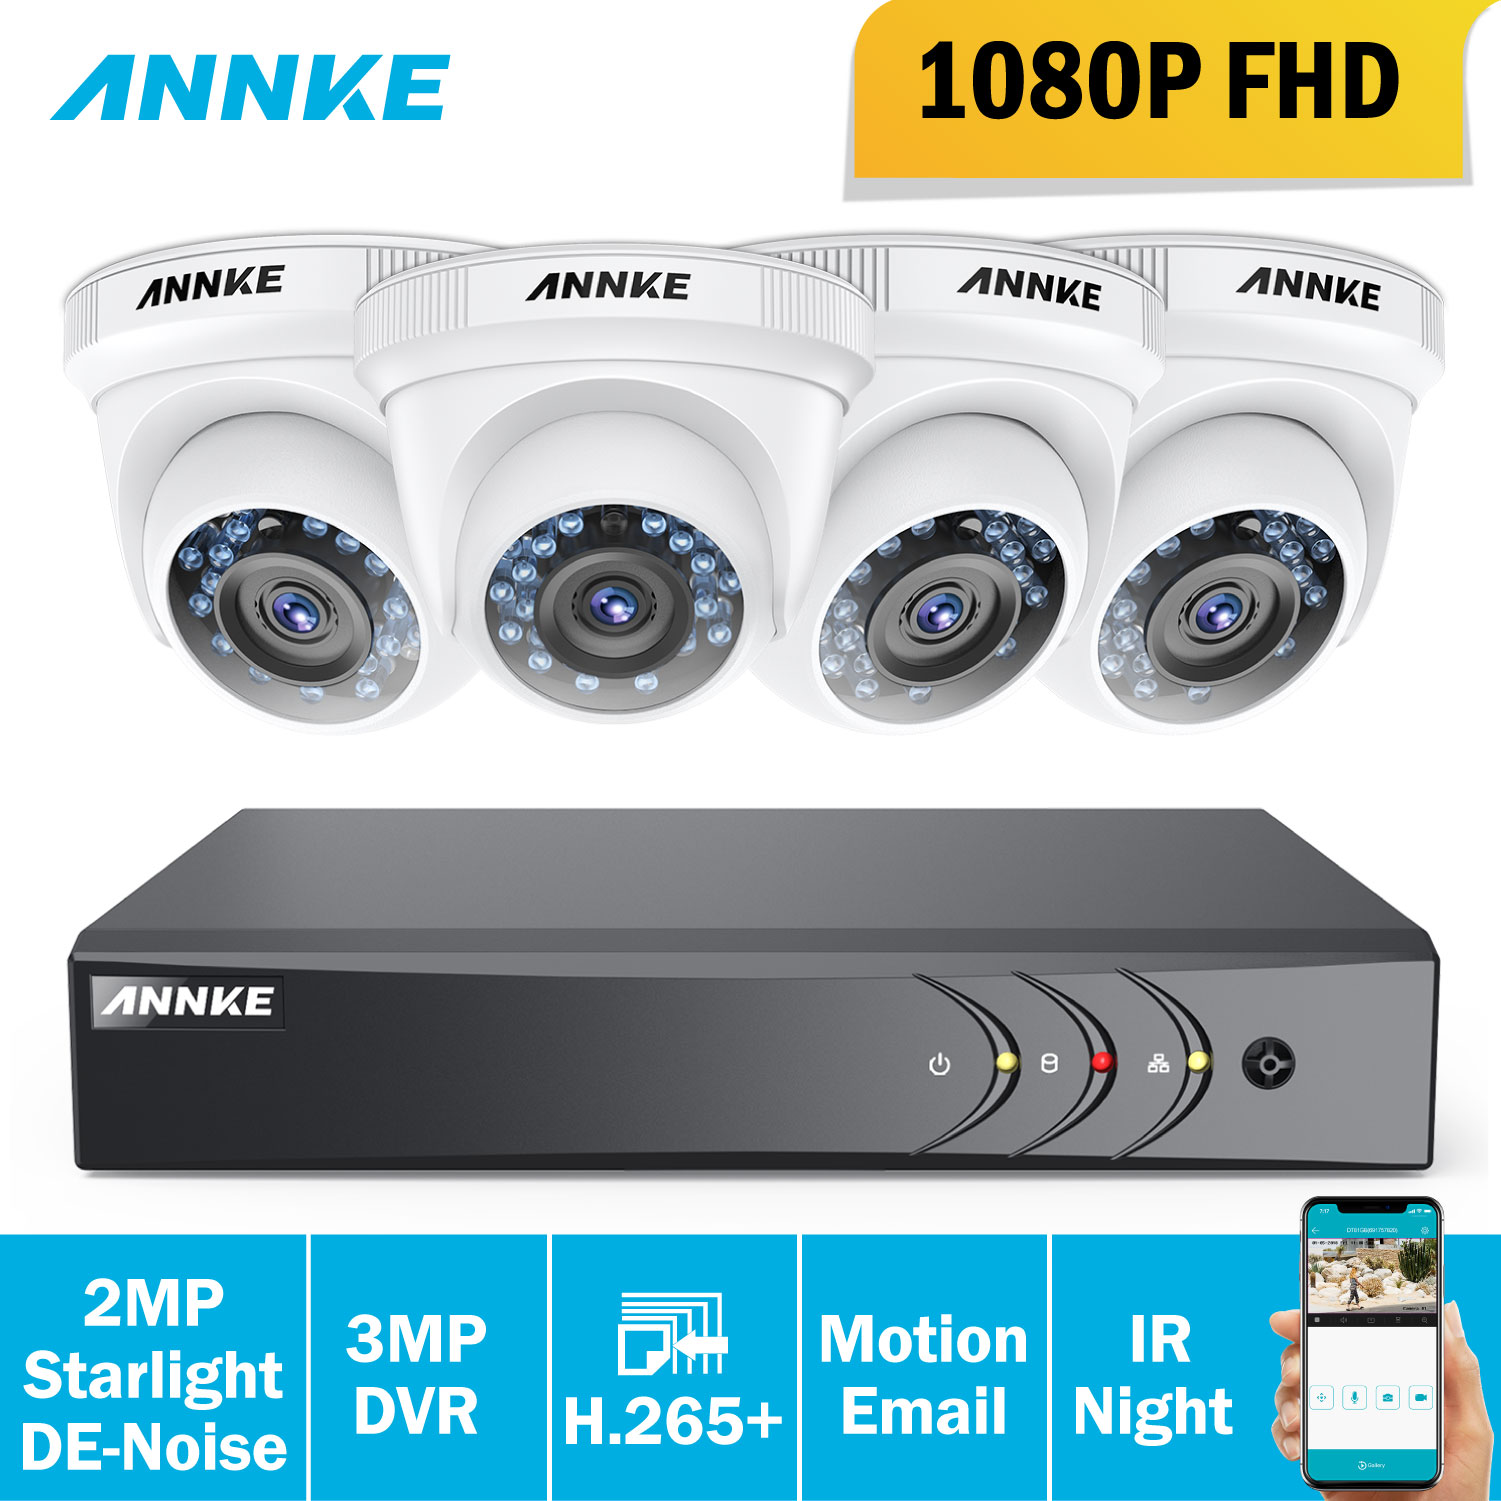 ANNKE 1080P HD Security Camera System 4CH 1080P HDMI DVR Kit with 4pcs 2MP outdoor surveillance